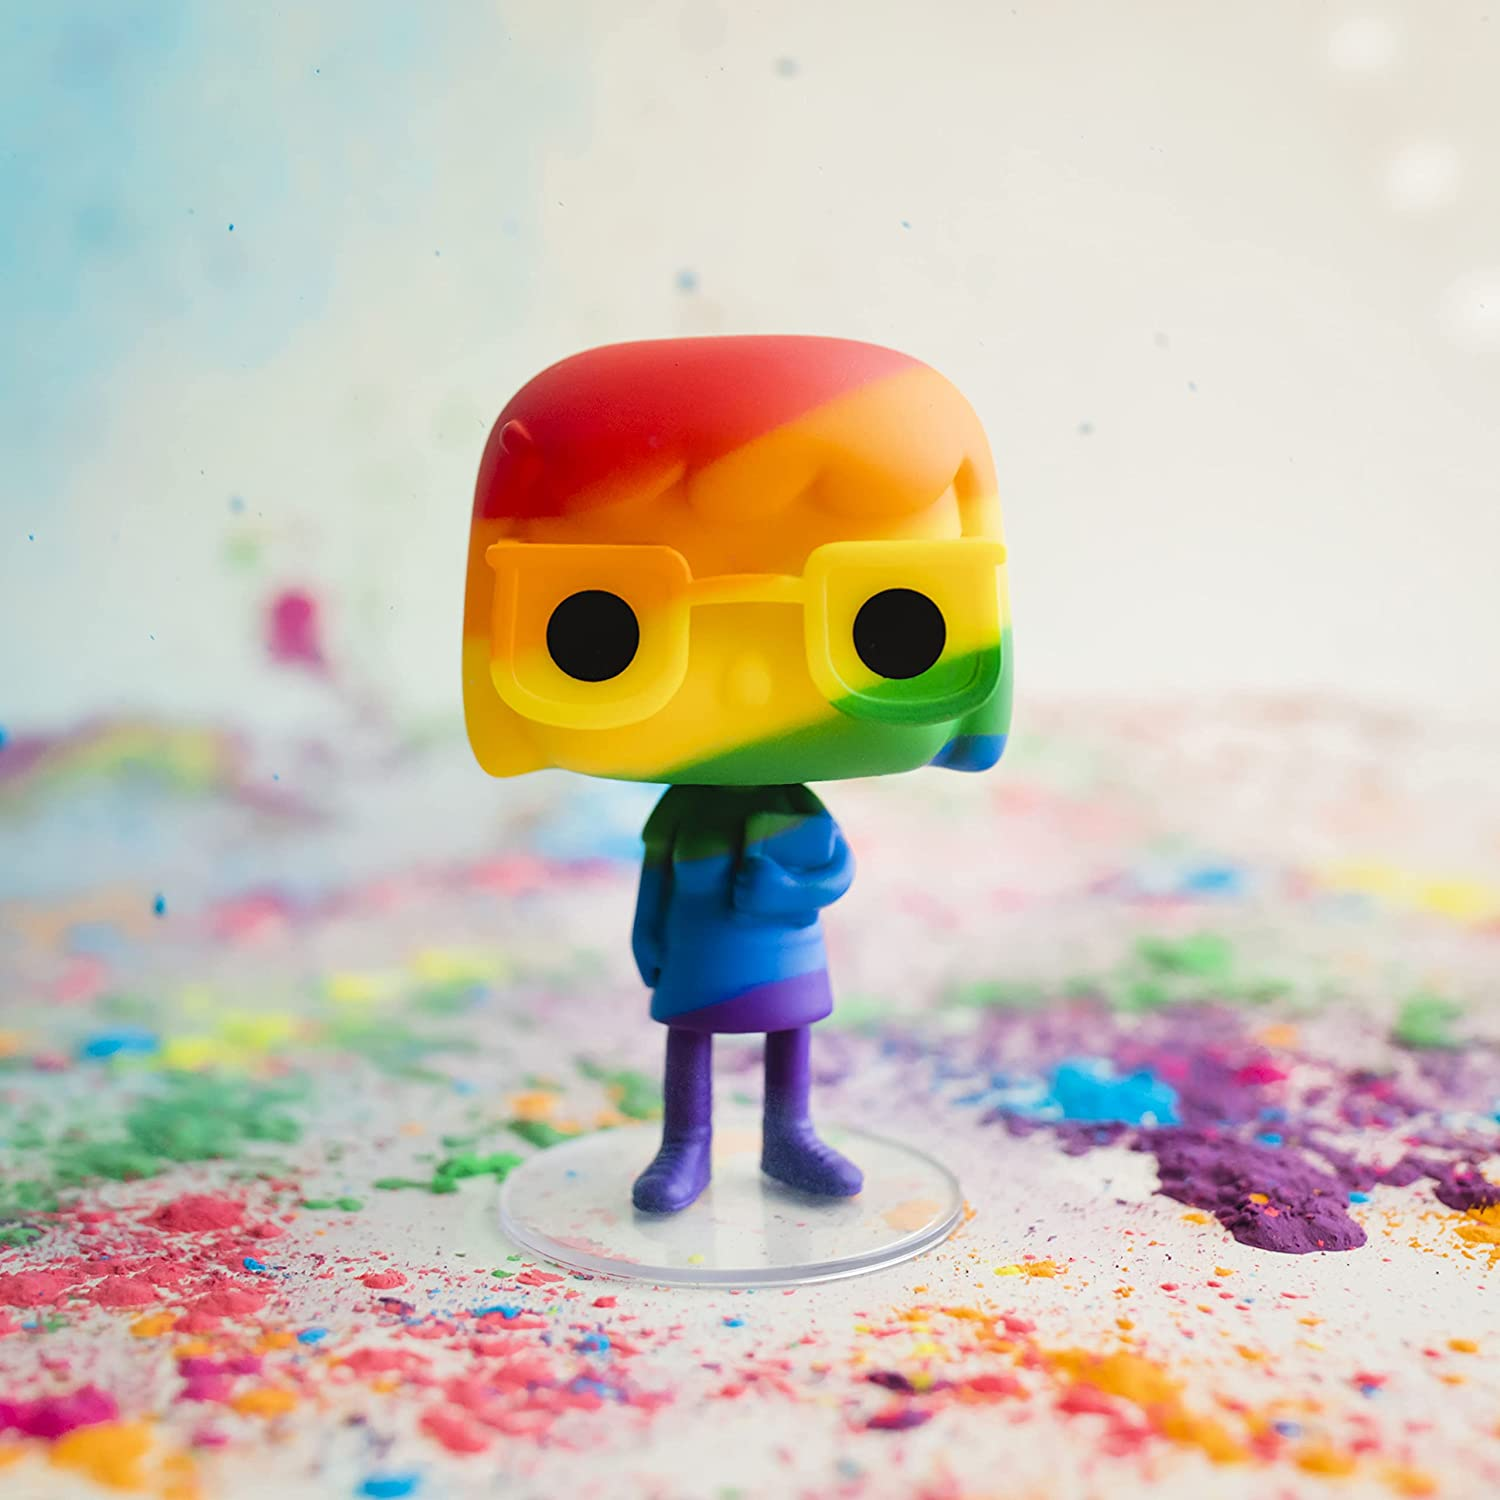 Funko's 2021 Pride Pop! collection includes Deadpool, Mickey Mouse, and Stitch 20